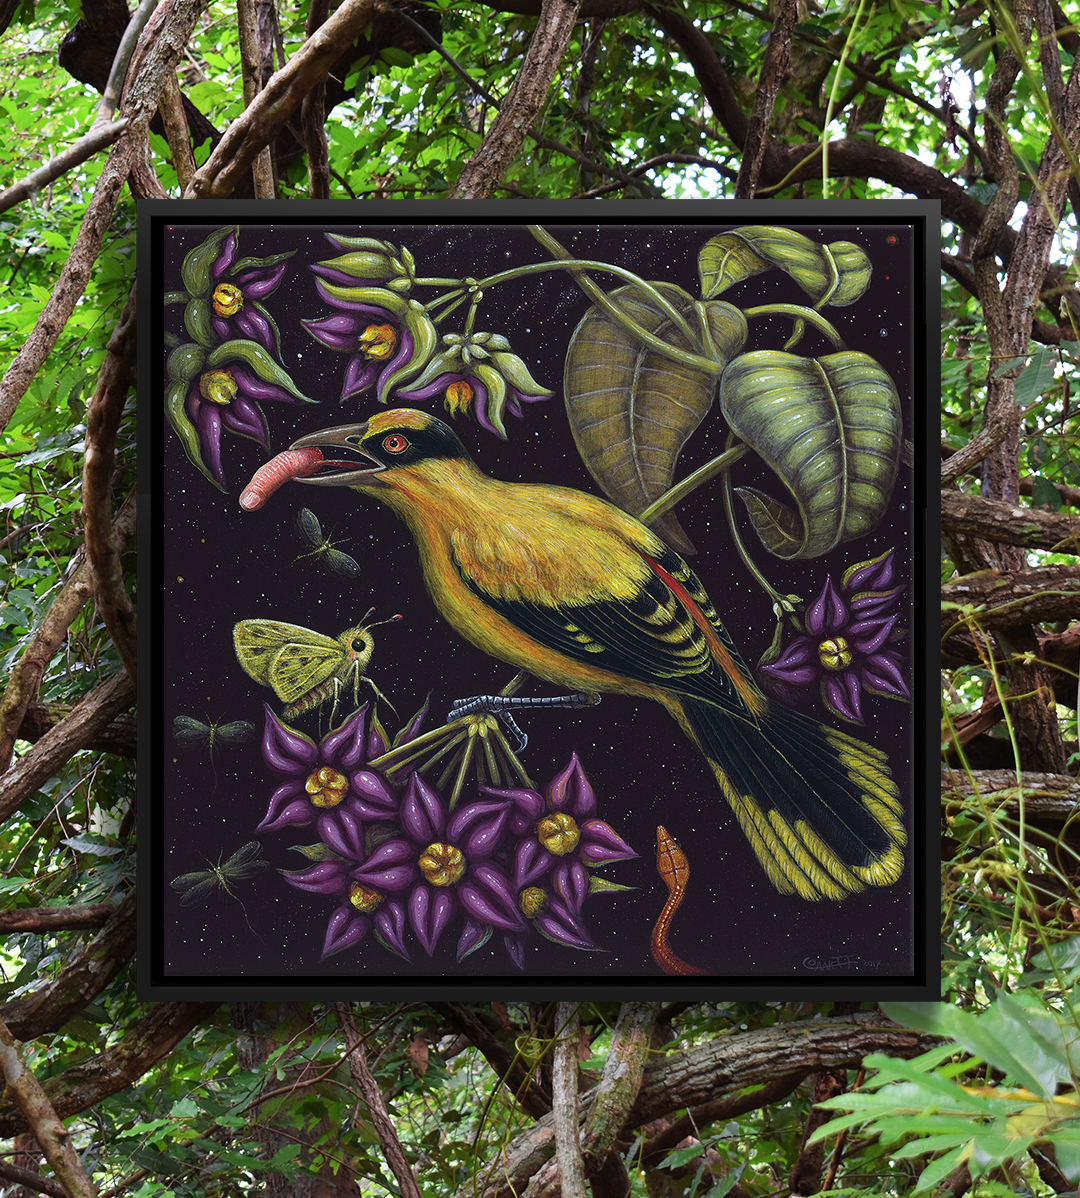 Image of yellow and black bird with a human finger in its beak surrounded by green leaves and purple flowers